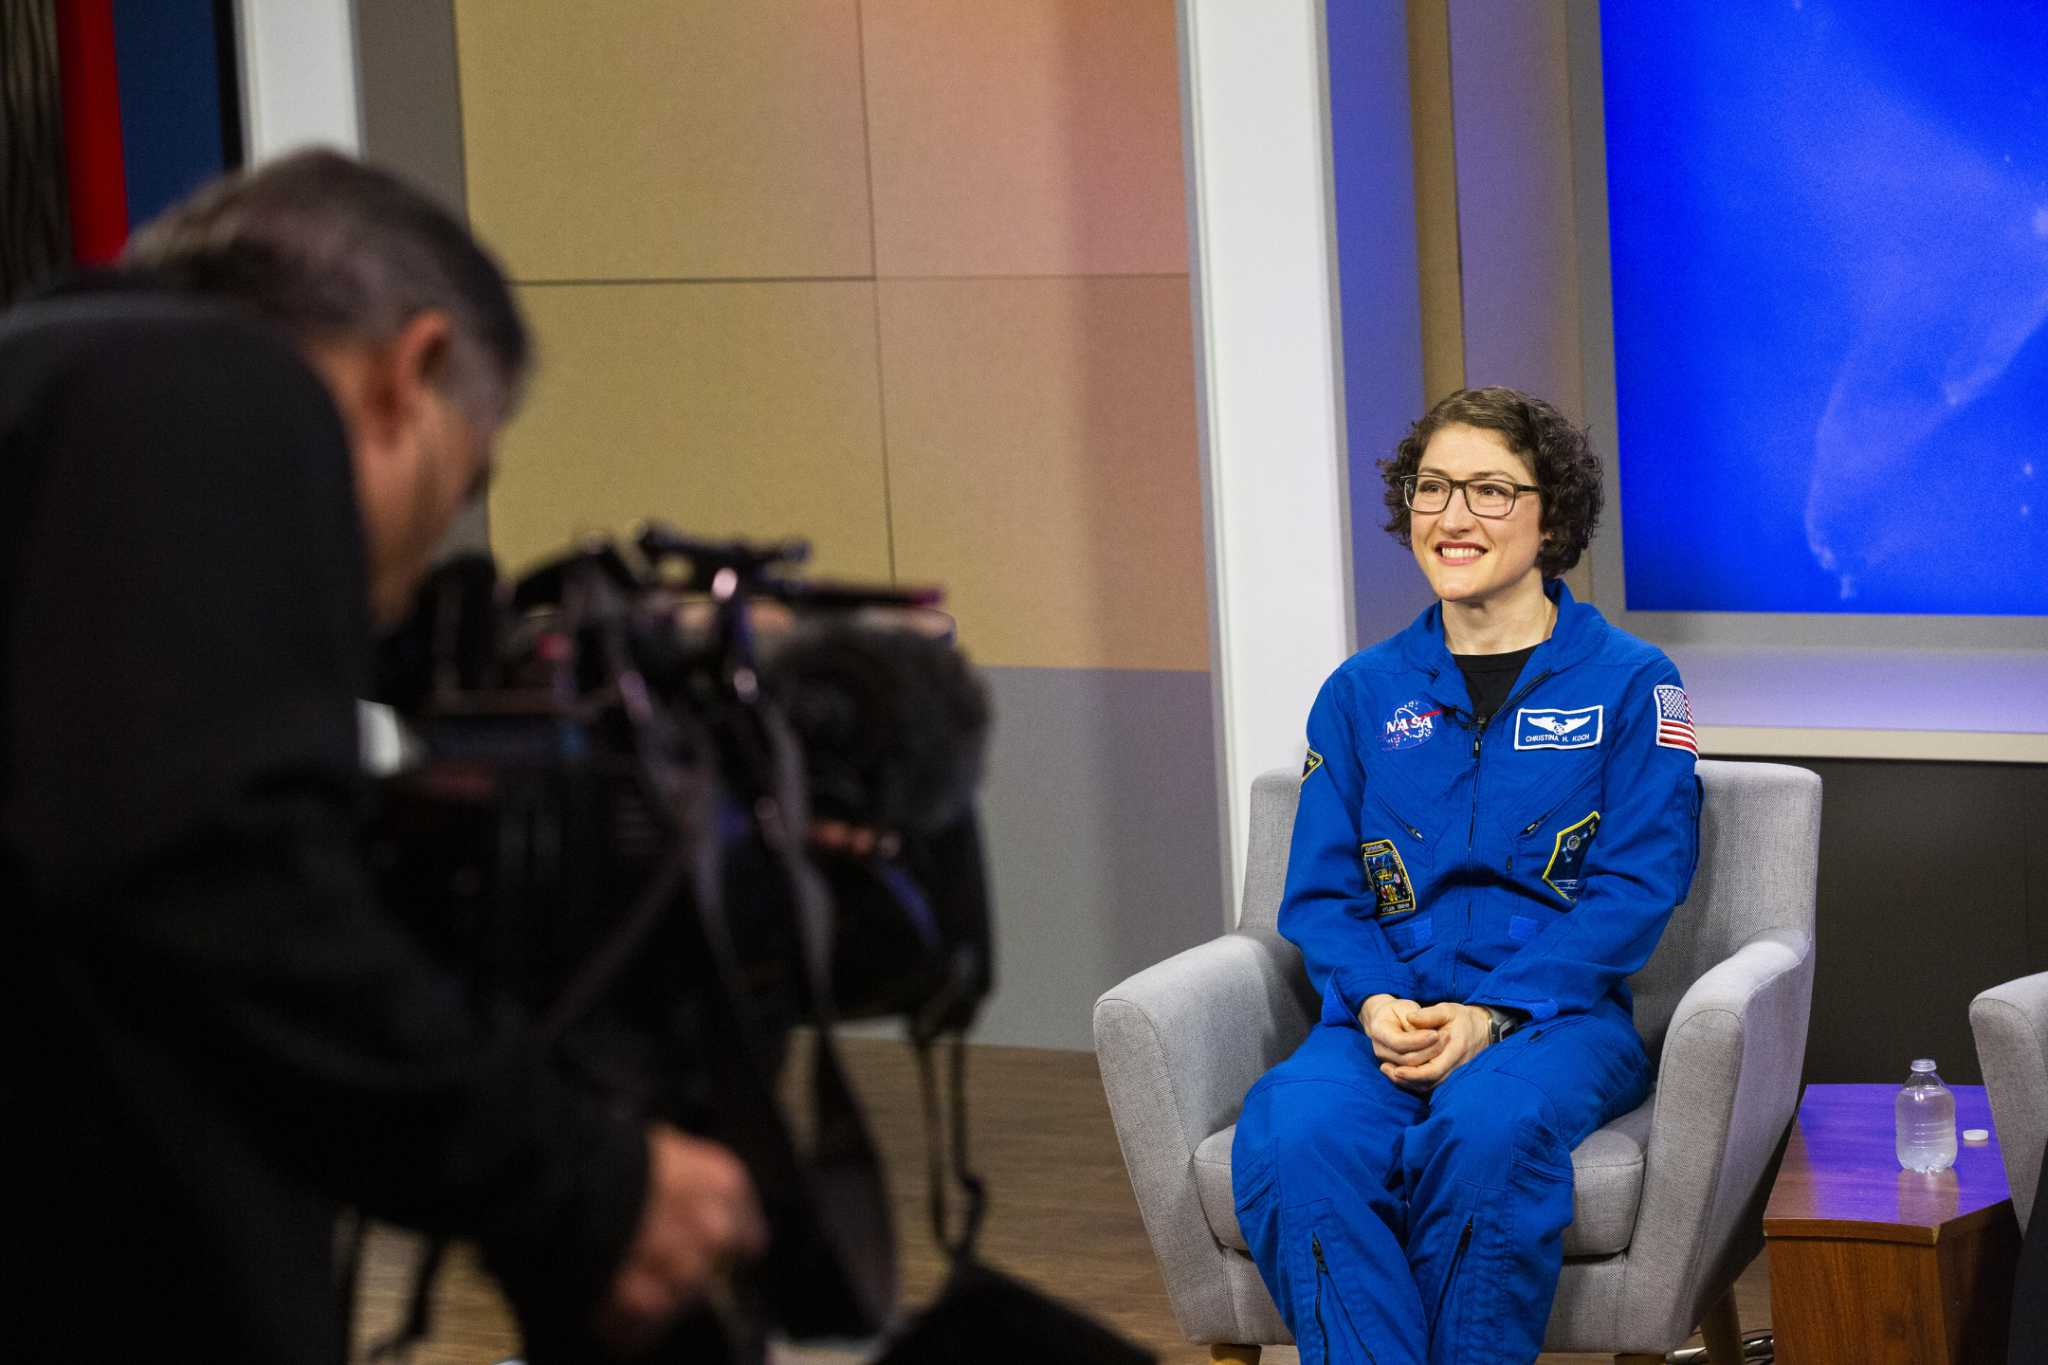 Christina Koch, back in Houston after record-setting space flight, readjusts to Earth